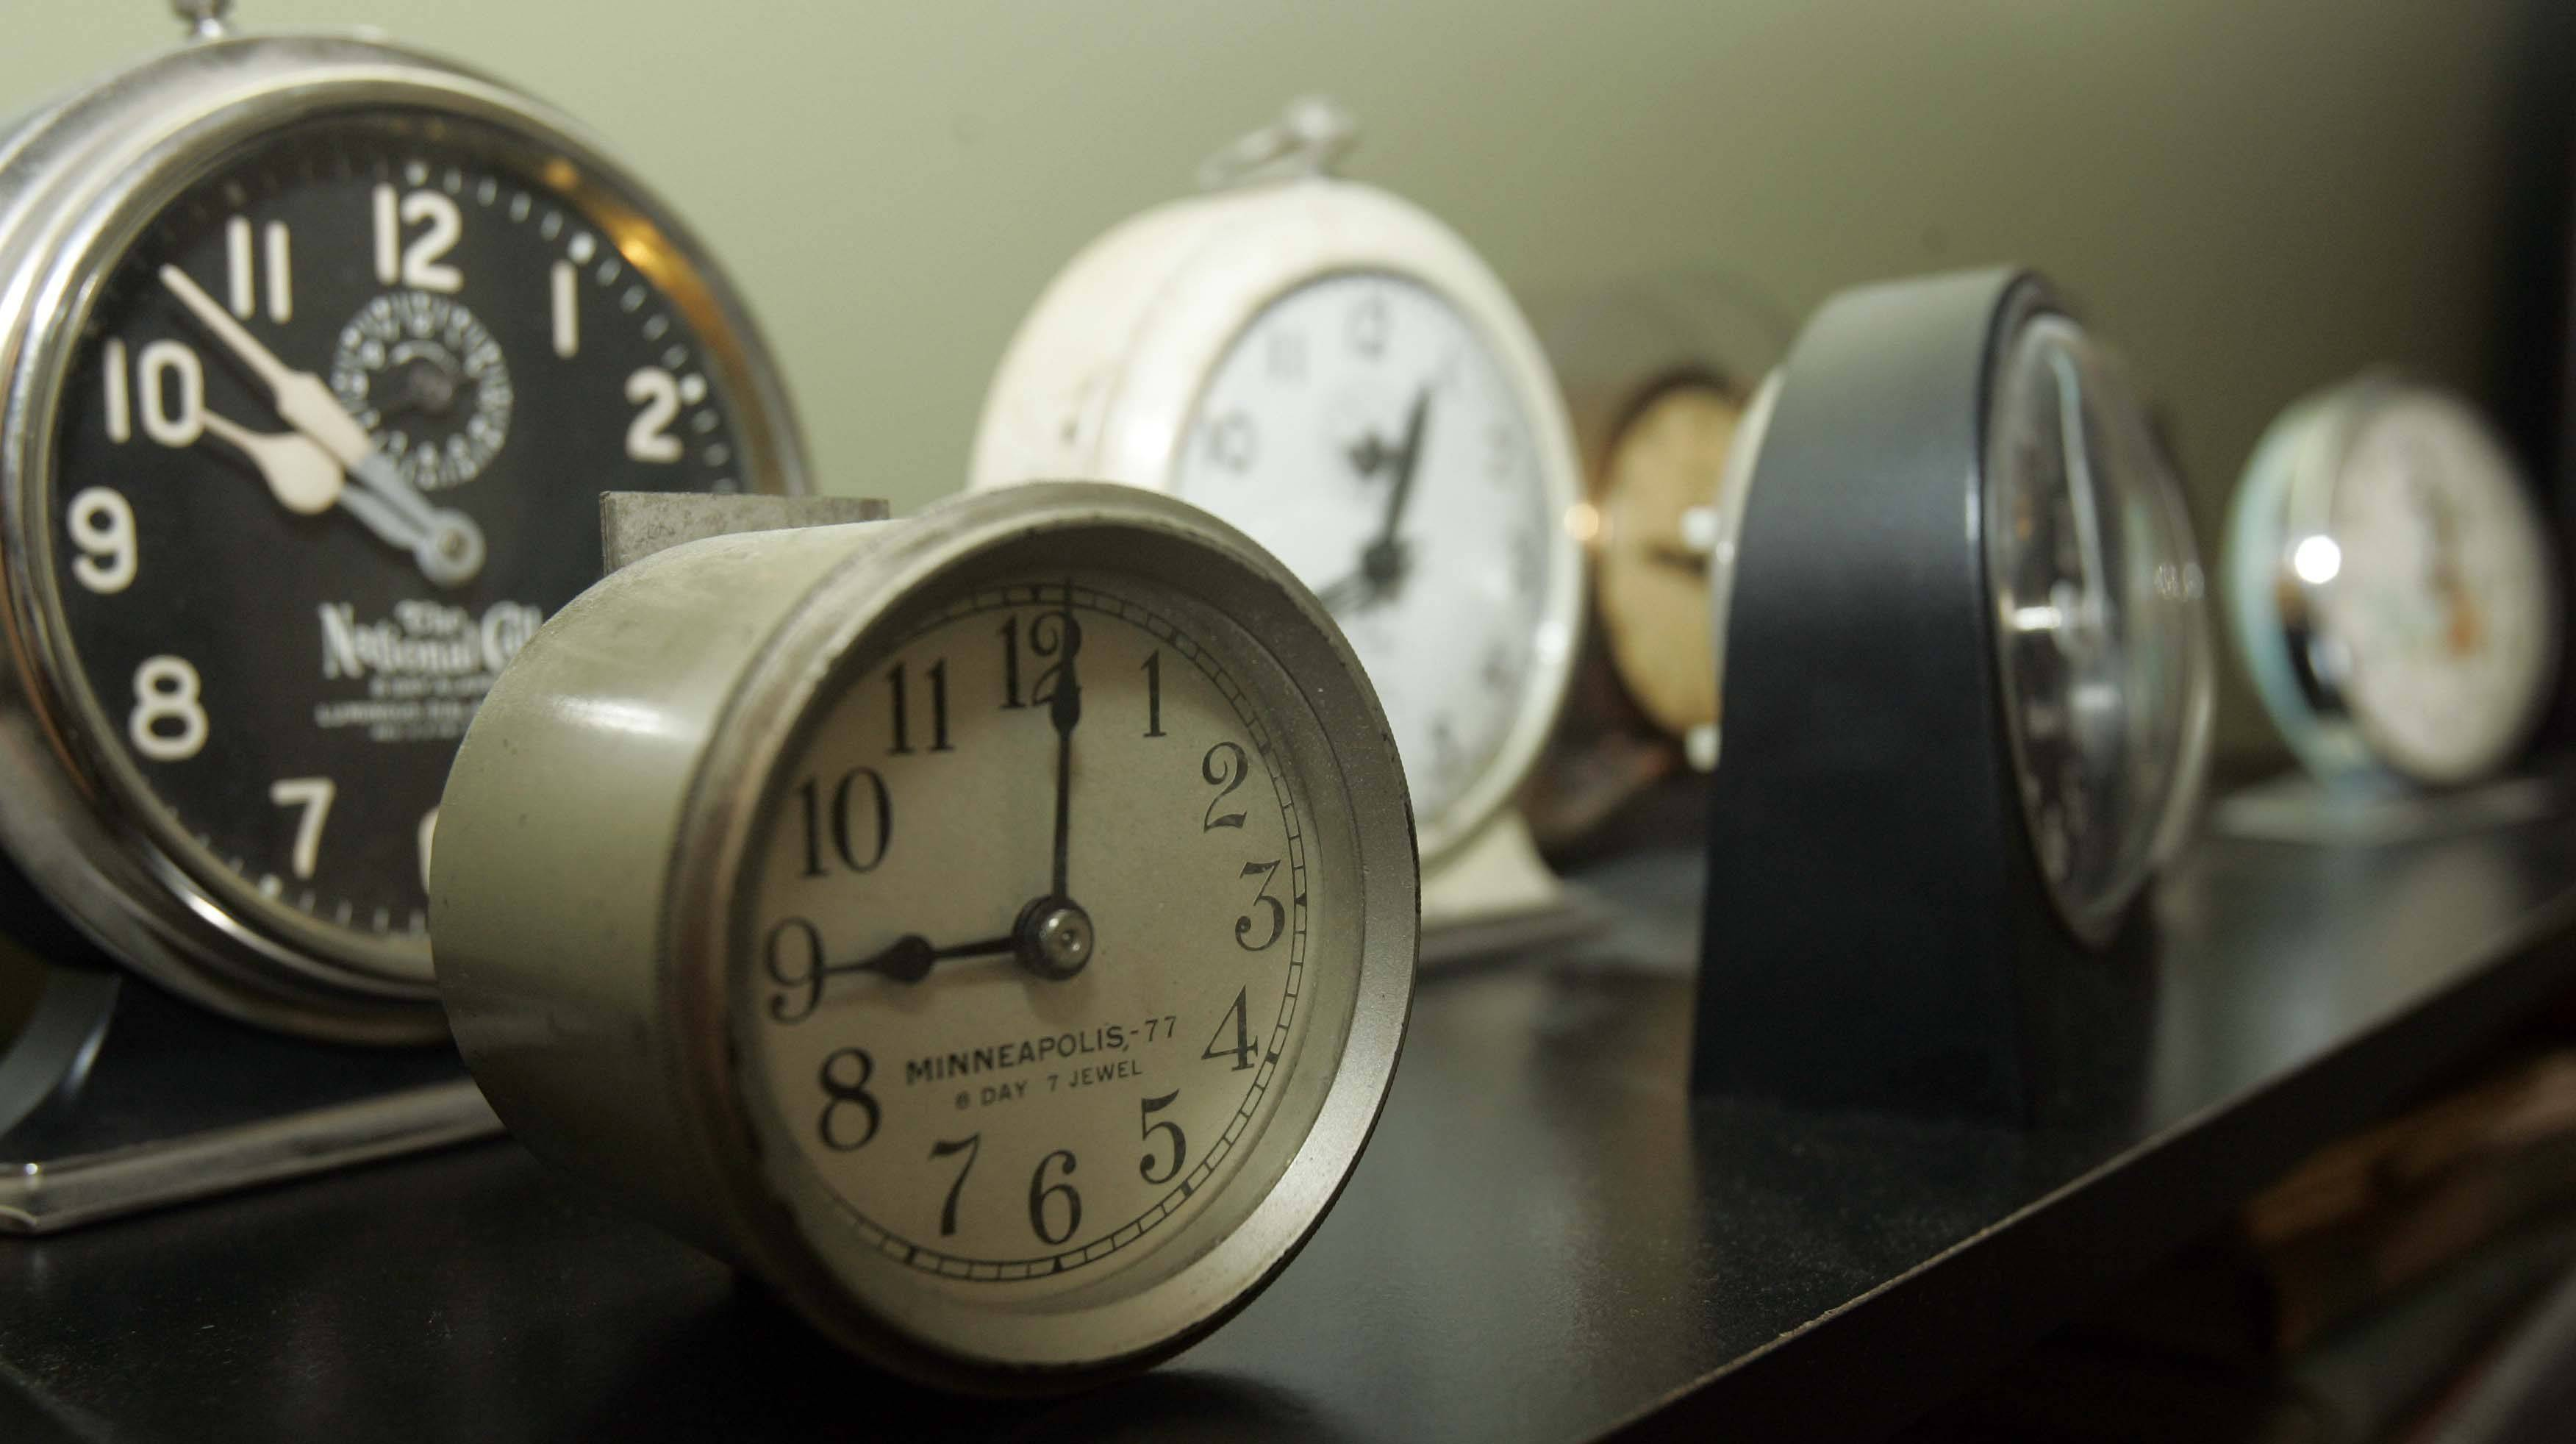 Jeff McIntire will show off his clock collection during the Historic Elgin House Tour.